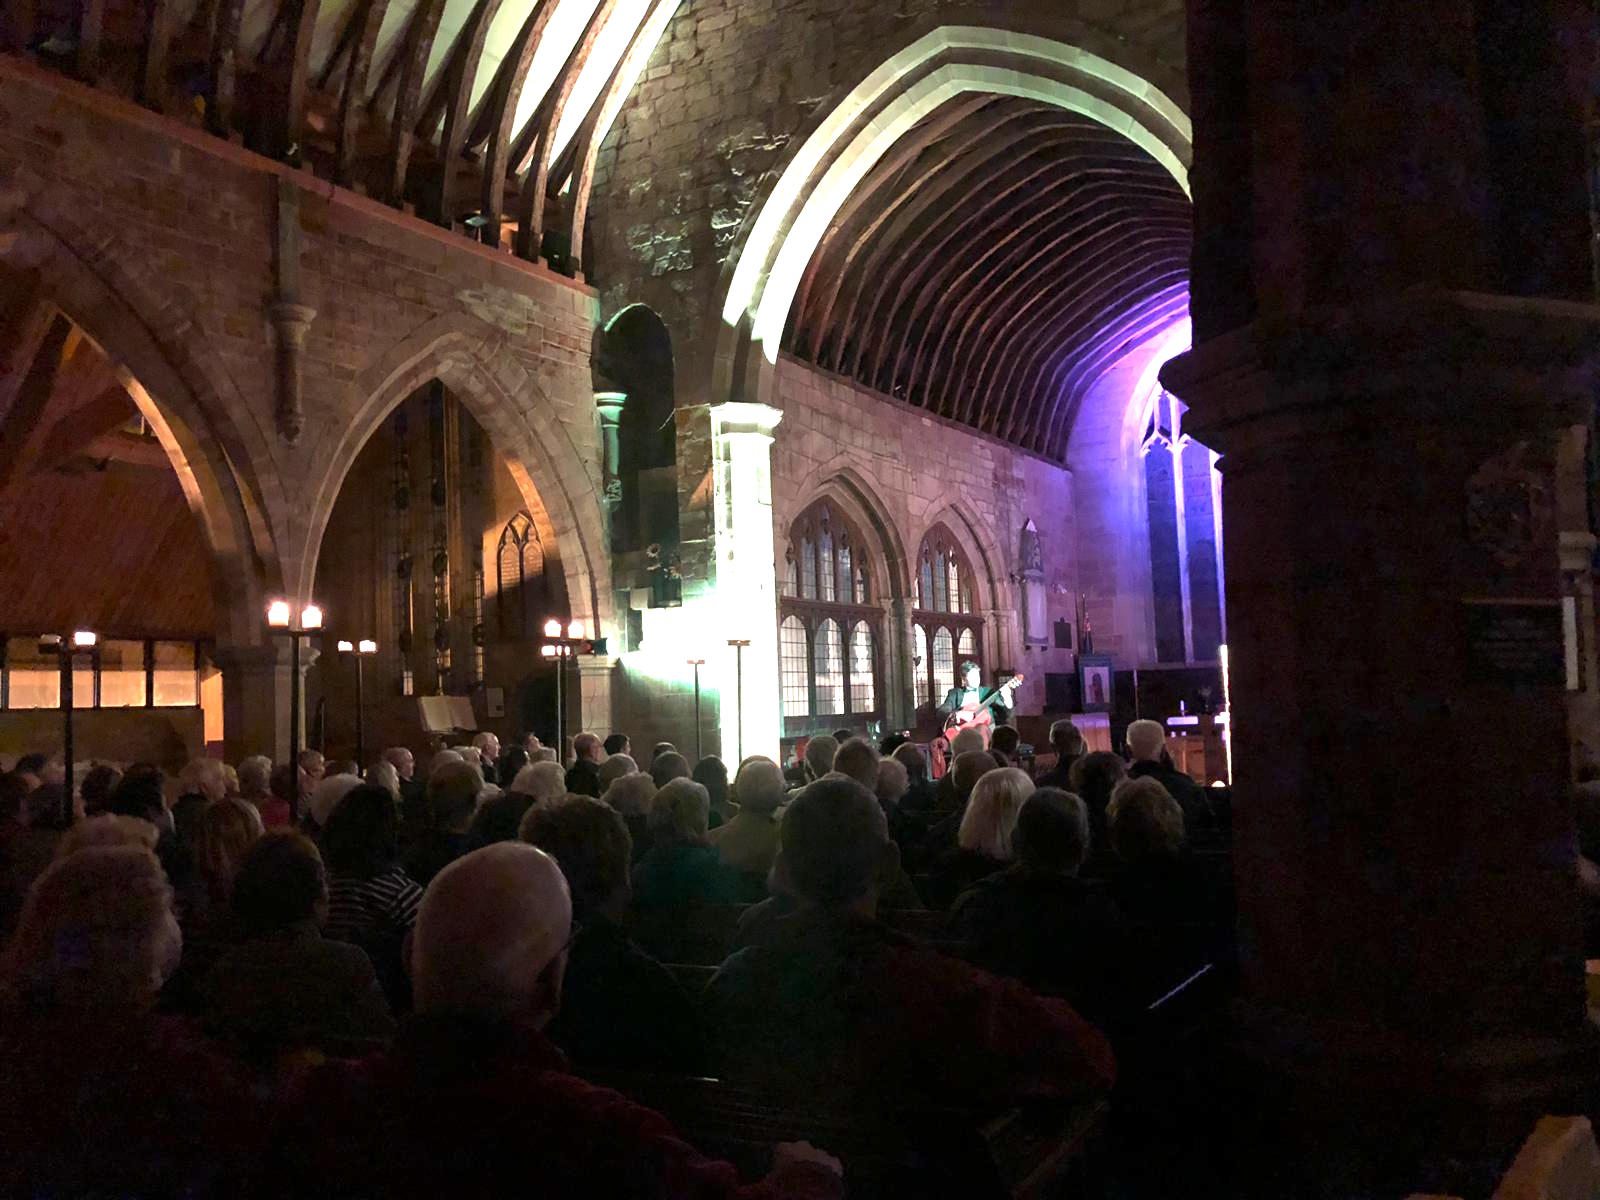 Audience shot from Michael's performance at St. Peter's Church in Kinver on Saturday 4th May 2019